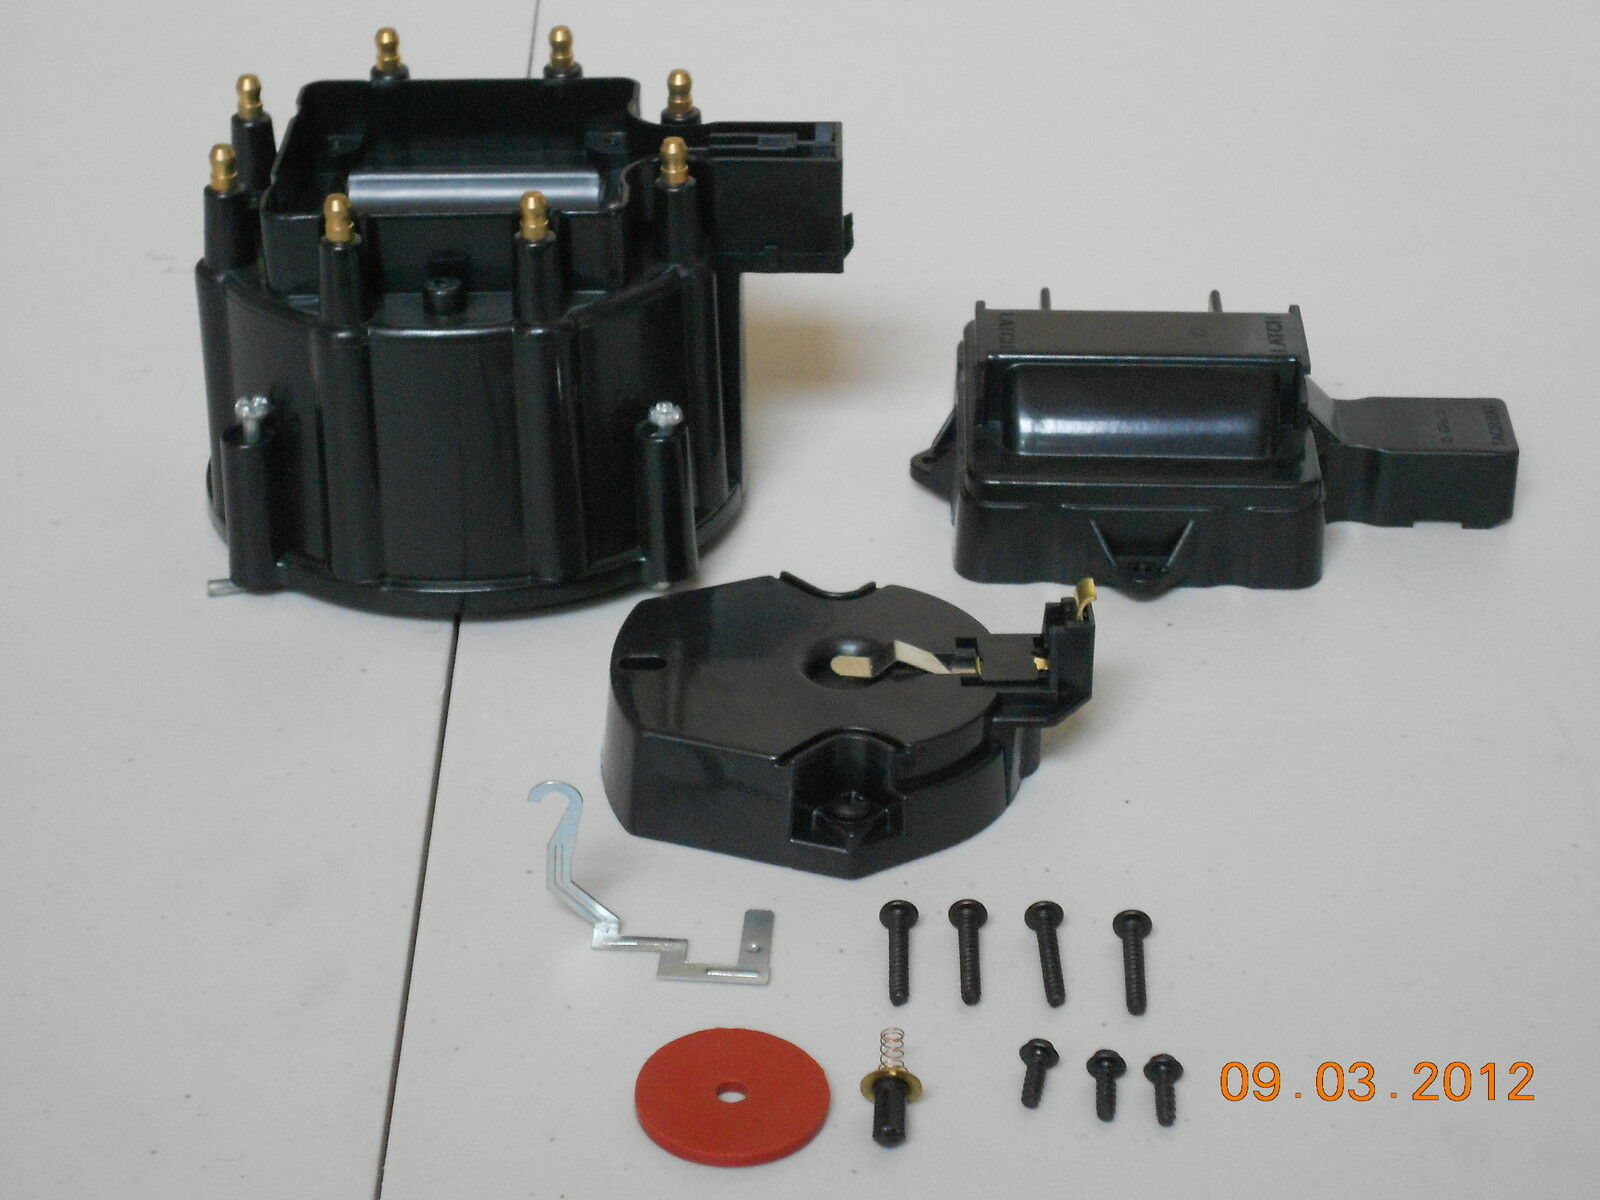 New Hei Distributor Cap Coil Cover Rotor Kit Black Gm Chevy Pontiac 1 Of 2free Shipping See More